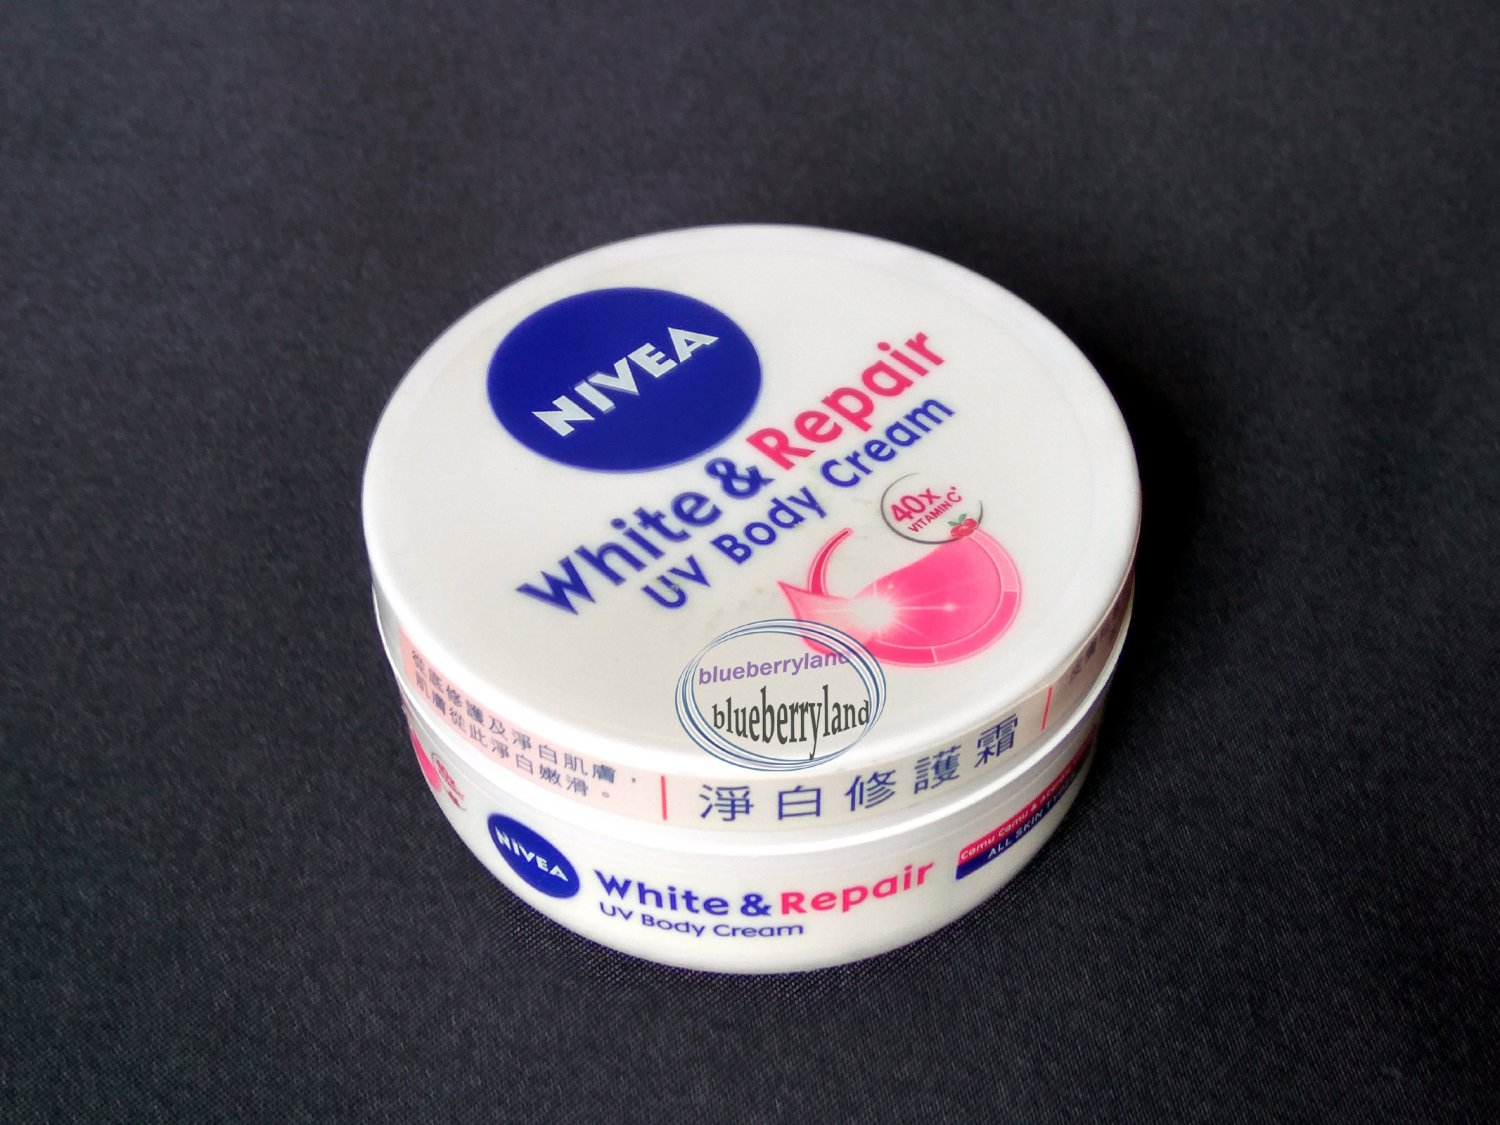 Nivea White & Repair UV Body Cream 100ml for face & body whitening